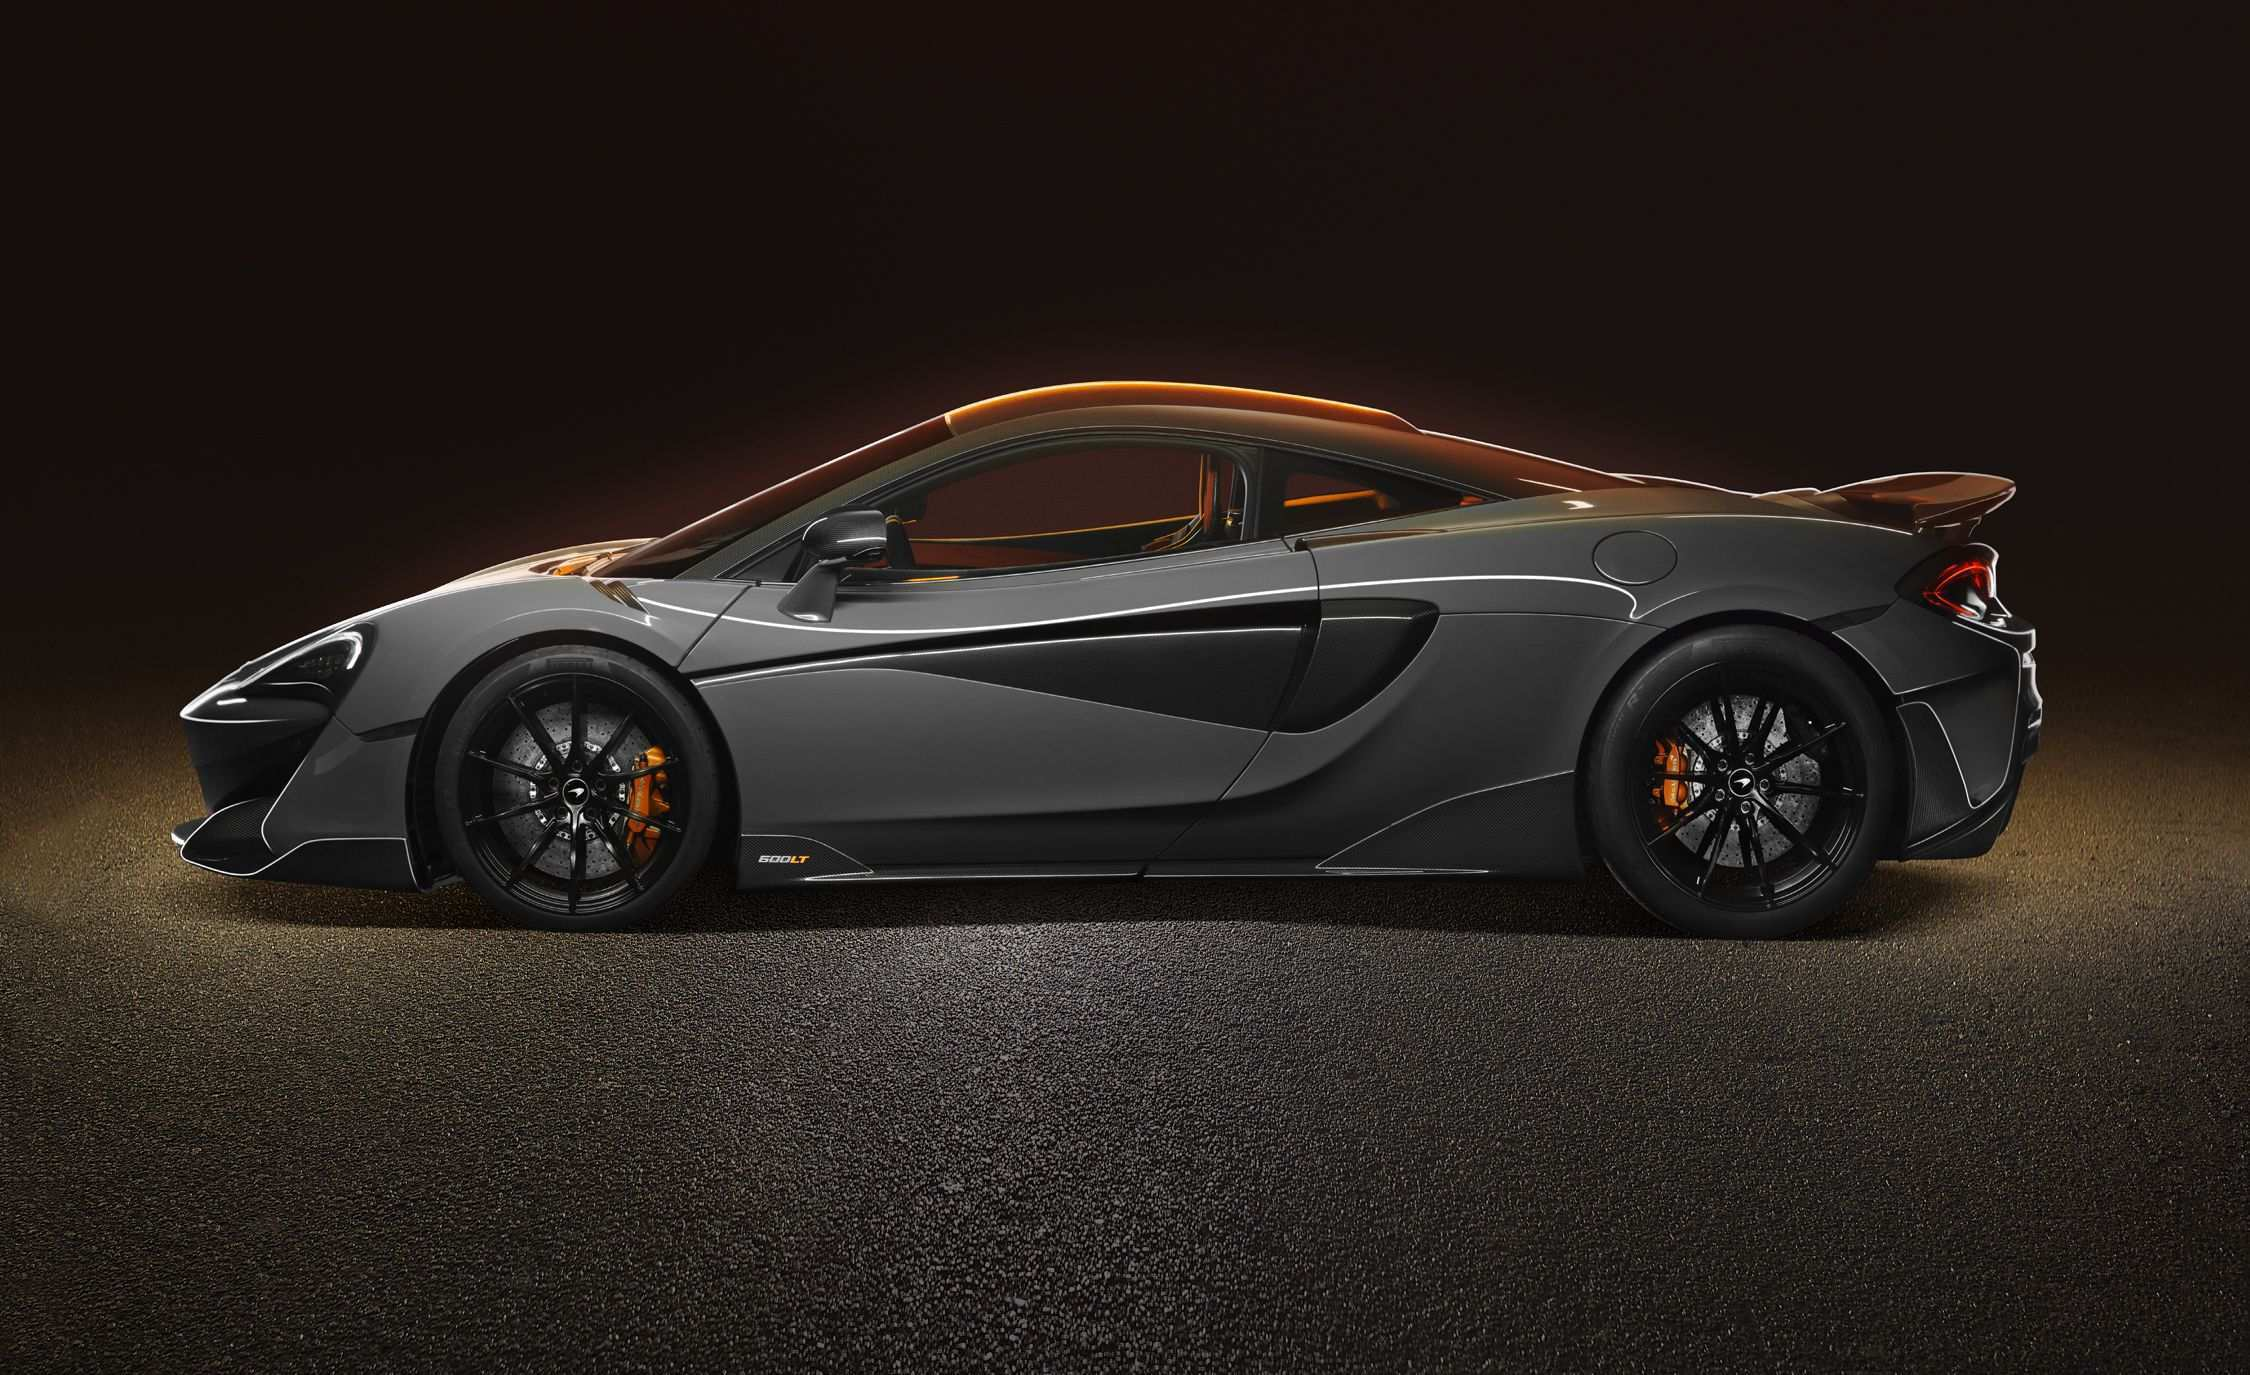 65 Concept of 2019 Mclaren Models Price and Review with 2019 Mclaren Models